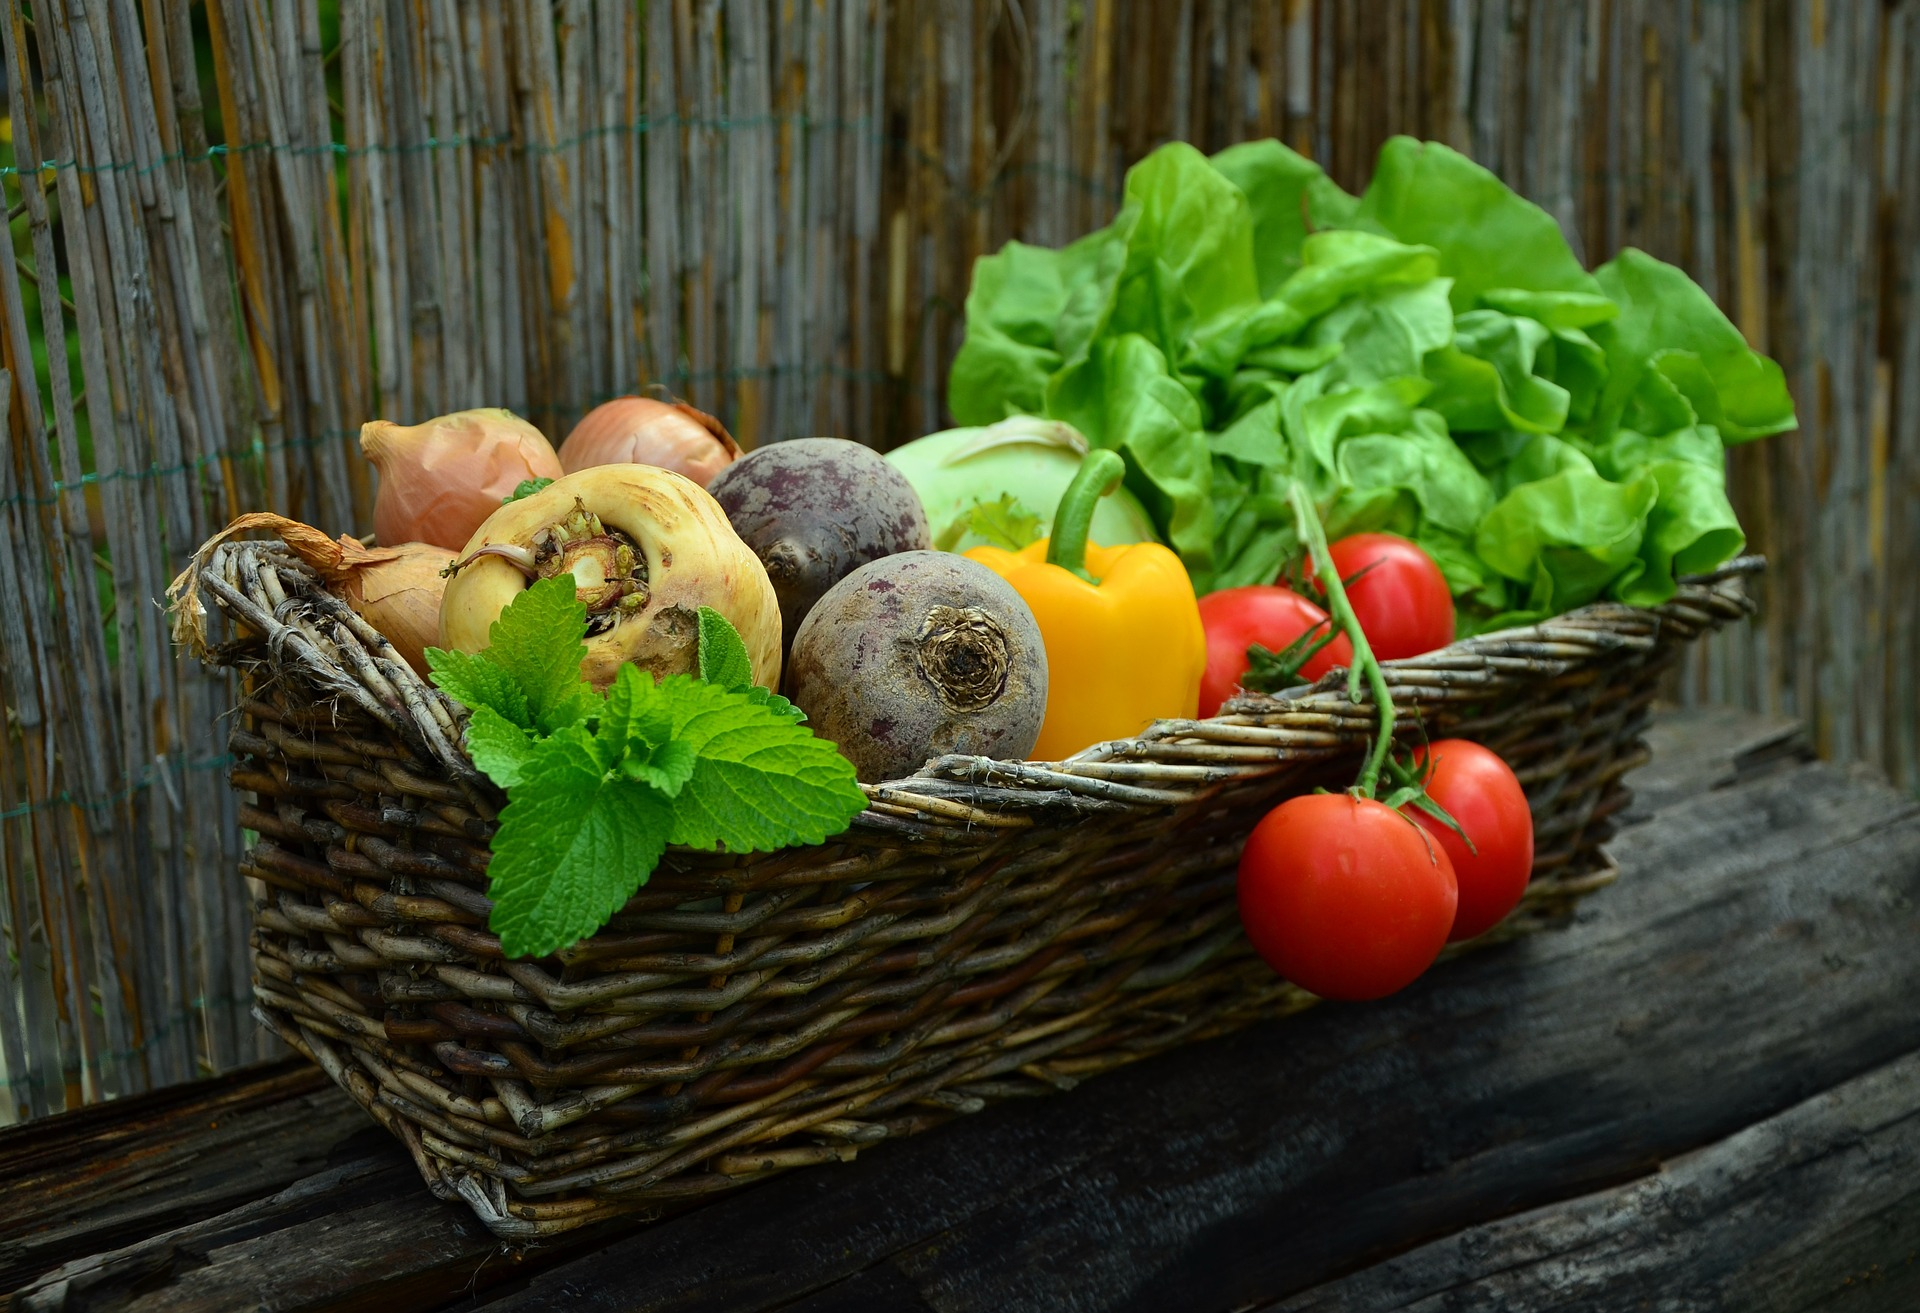 Photo of produce by congerdesign from Pixabay.